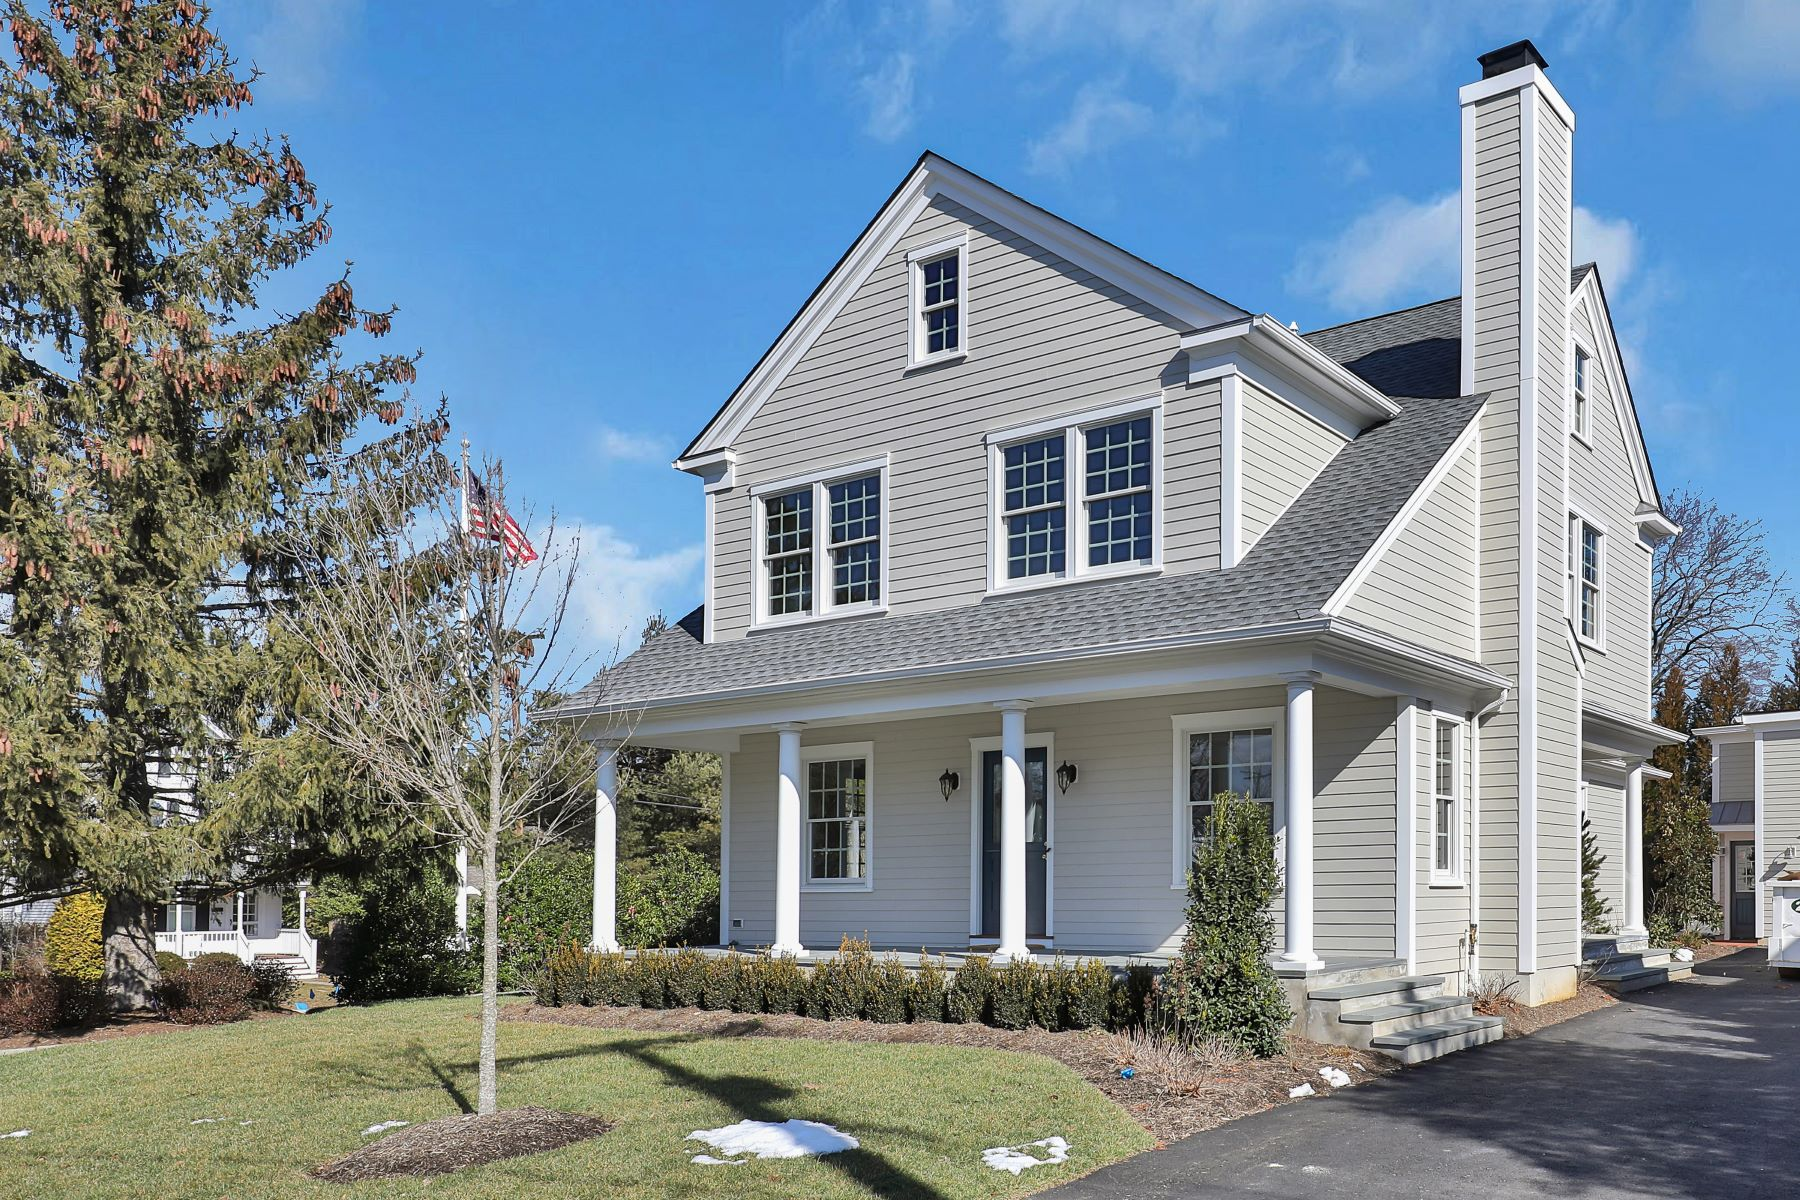 Single Family Home for Sale at Fair Haven, NJ - New Construction 7 Church Street Fair Haven, New Jersey, 07704 United States